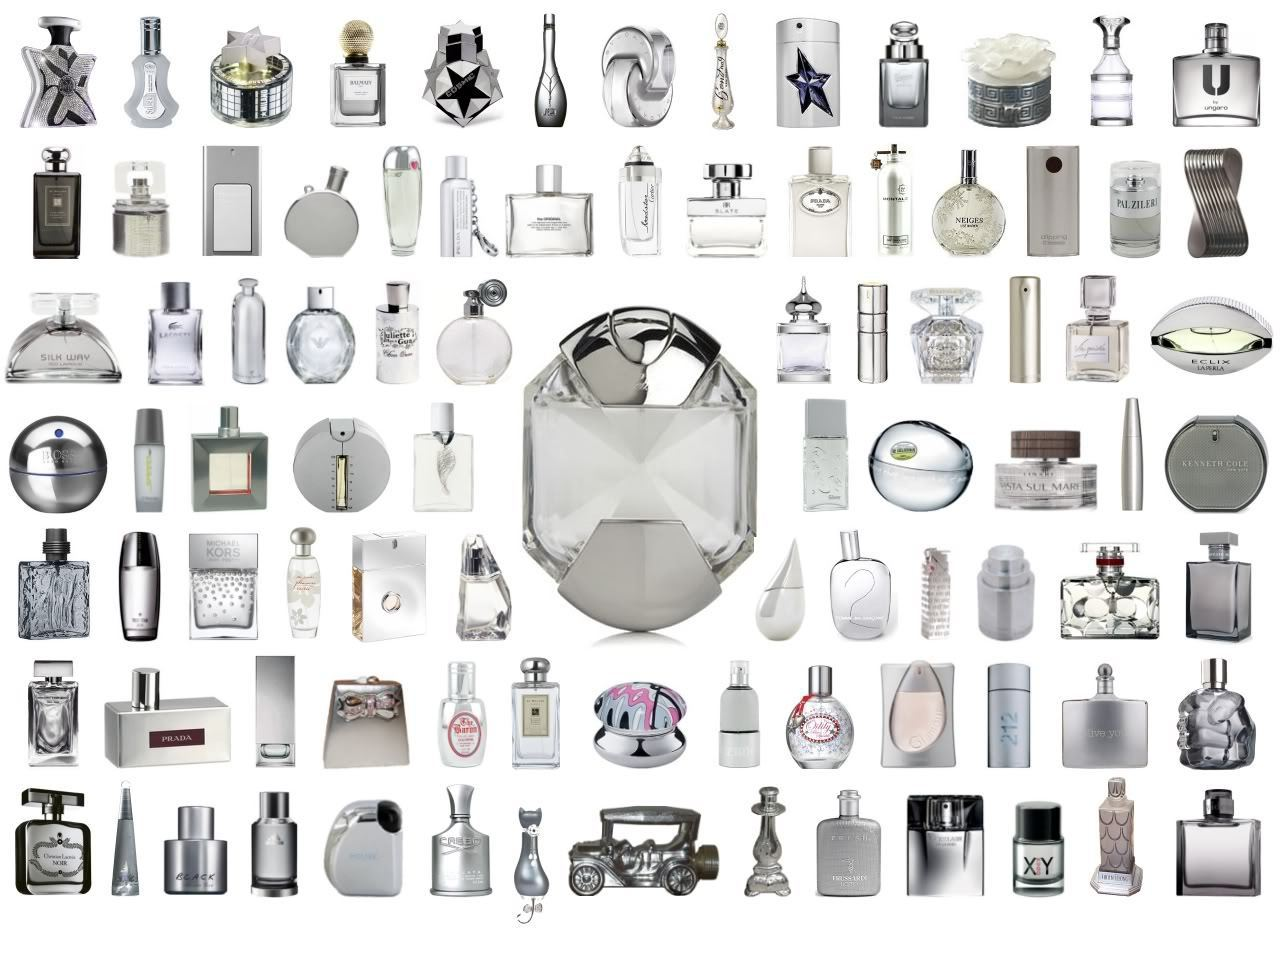 Silver-wallpaper-fragrance-15984683-1280-960 Wallpaper